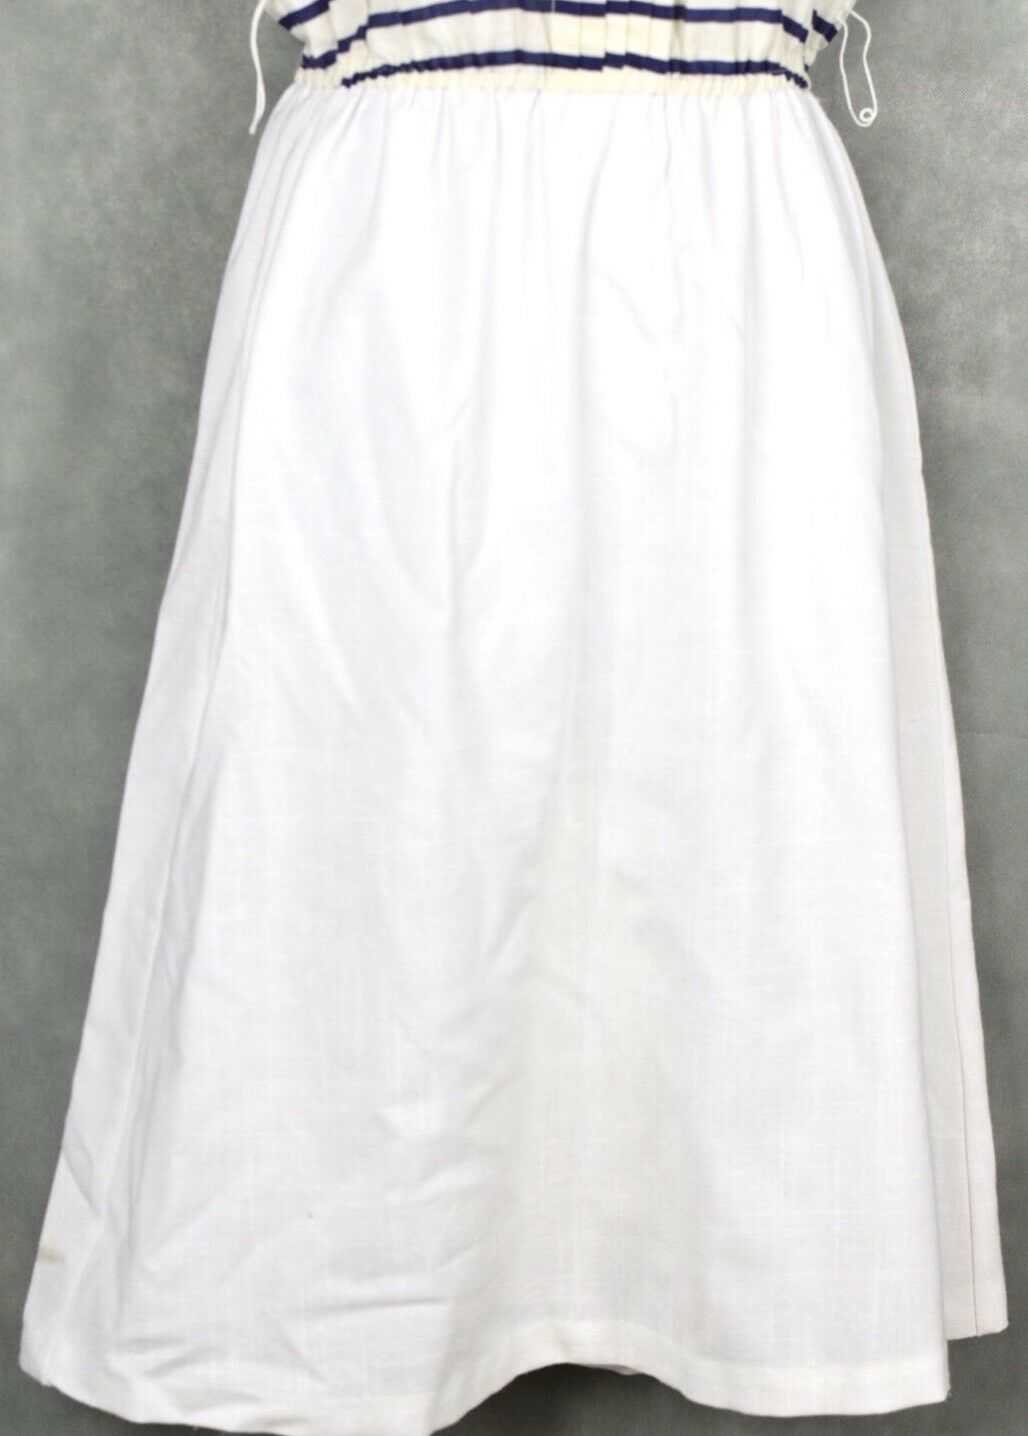 Vintage No Brand White And Blue Dress Lot Size 12 - image 4